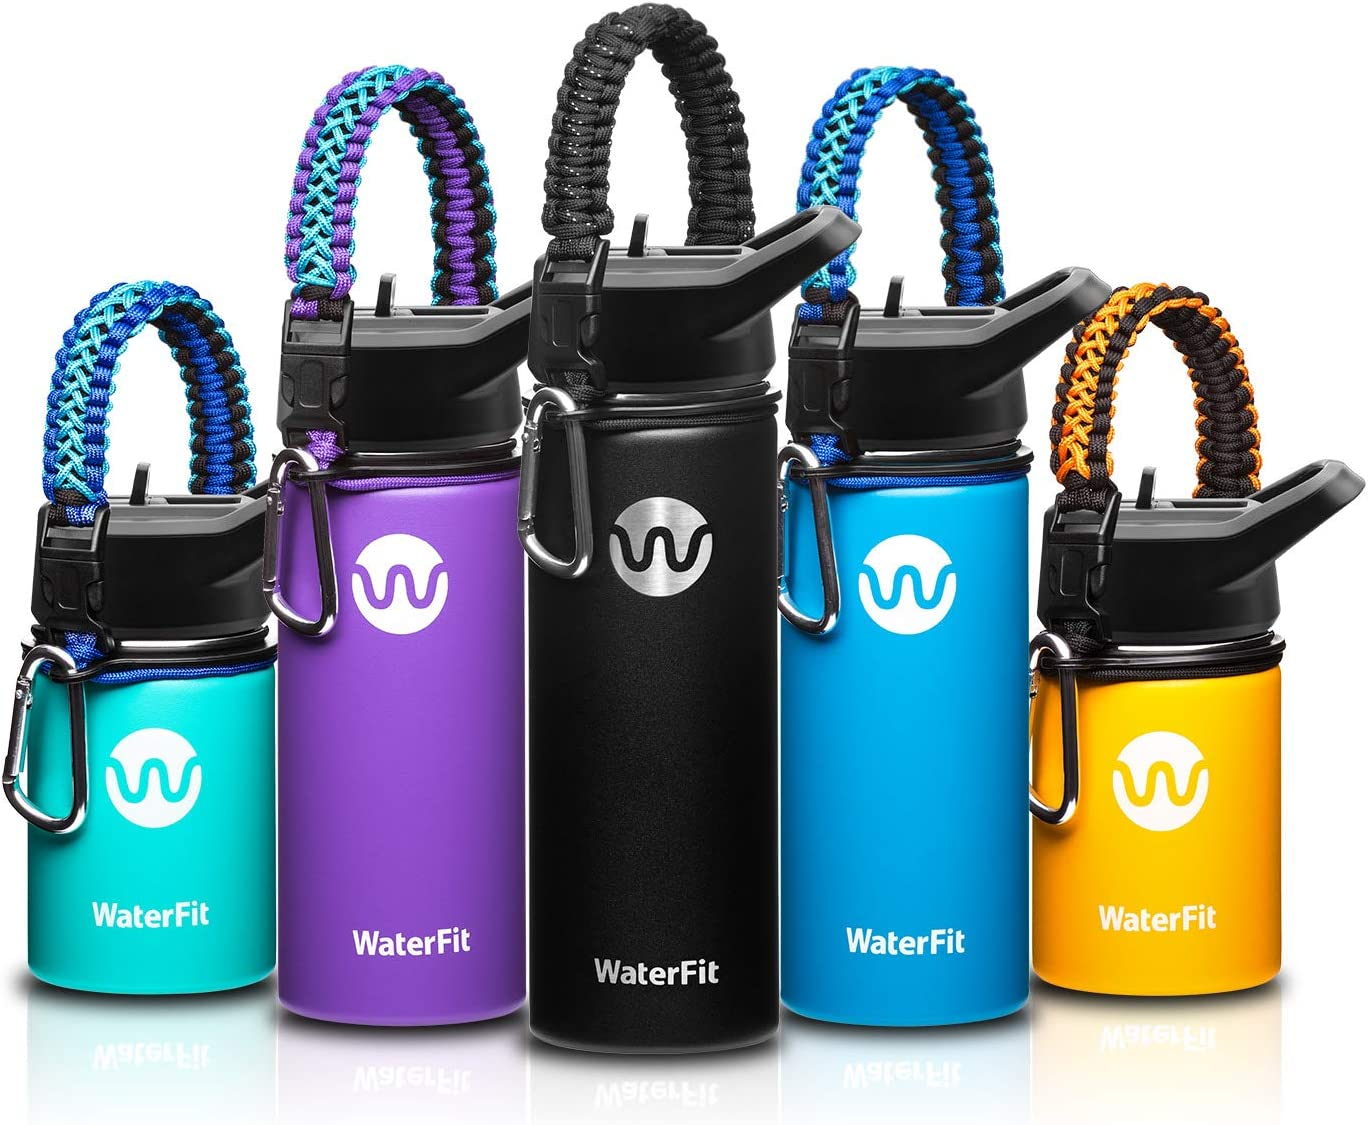 WaterFit Vacuum Insulated Water Bottle - Double Wall Stainless Steel Leak Proof BPA Free Sports Wide Mouth Water Bottle - Travel Straw Lid - 12oz 16oz 20oz -5 Colors with Paracord Handle